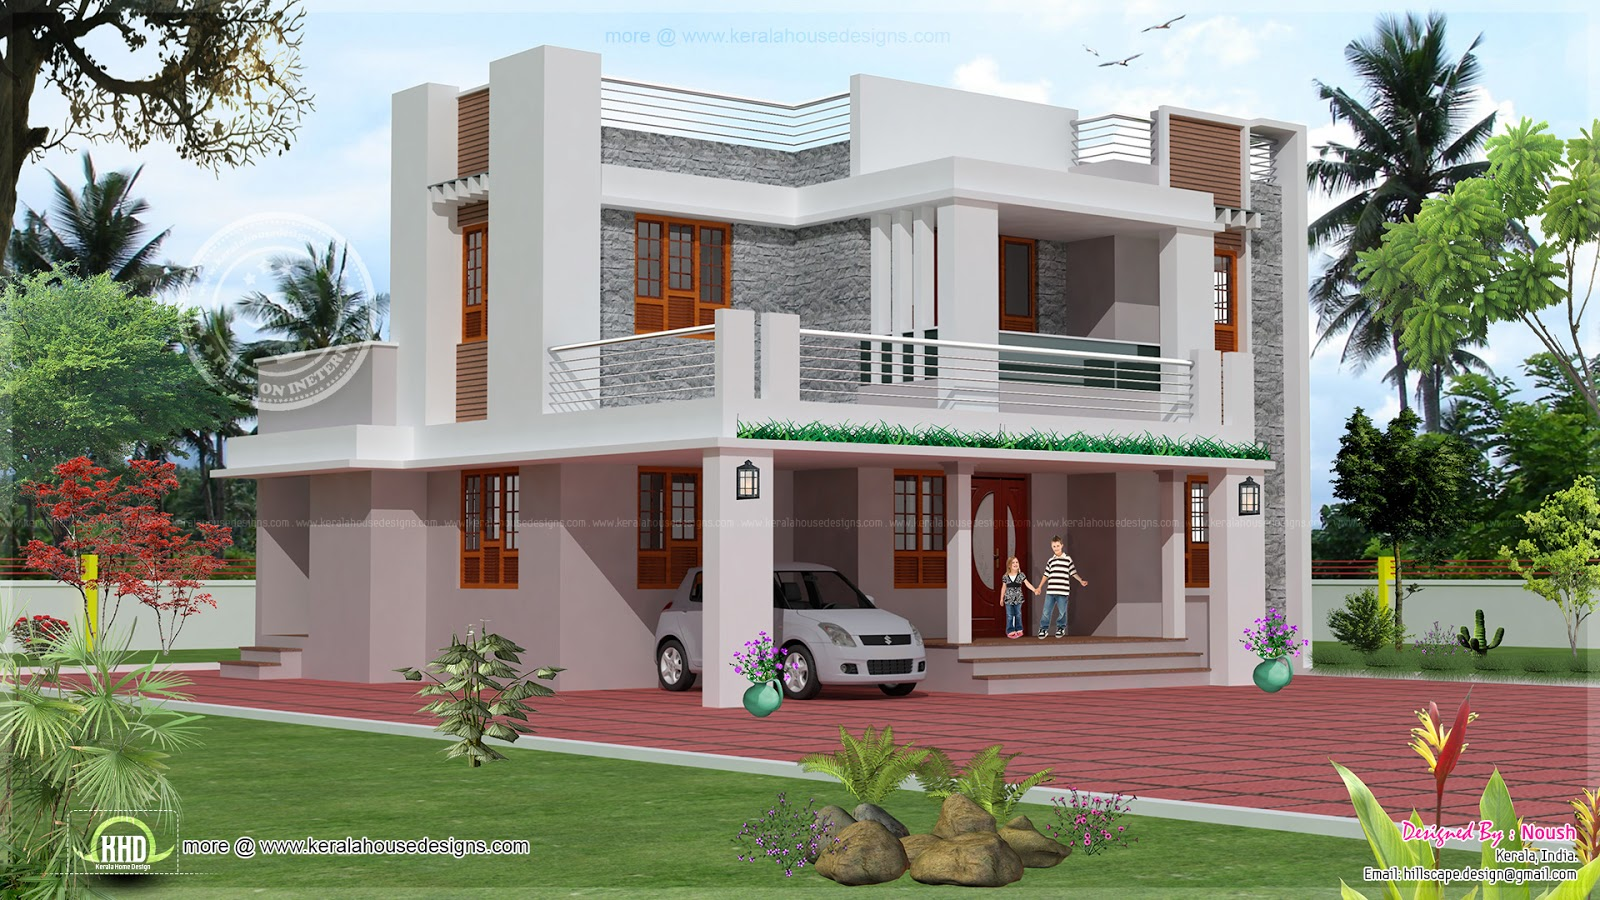 4 bedroom 2 story house exterior design home kerala plans for Indian home exterior design photos middle class